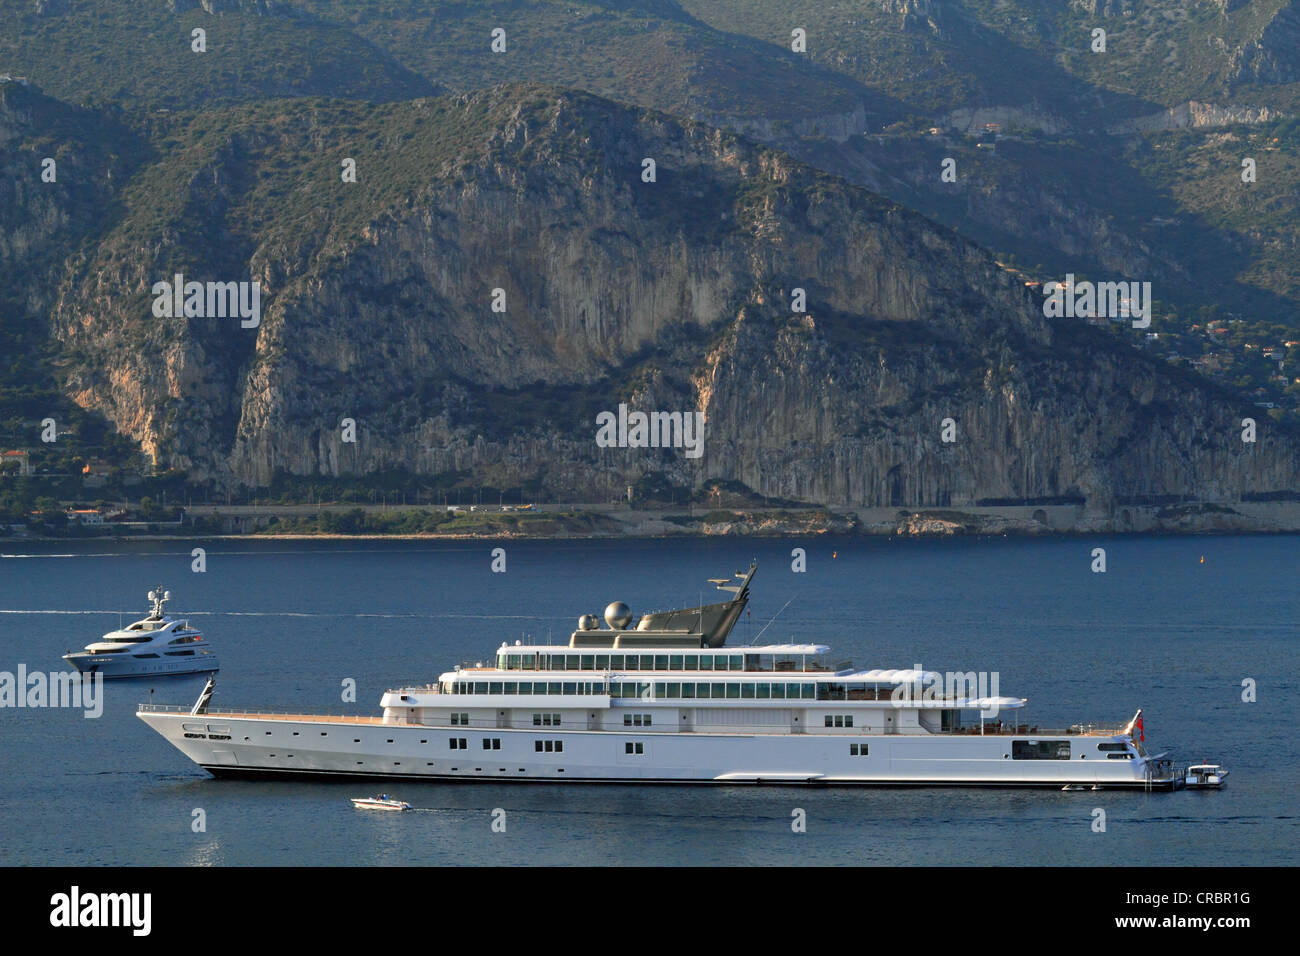 Motor yacht 'Rising Sun', 138m, built by Luersson Yachts in 2004, owned by David Geffen, previously owned - Stock Image